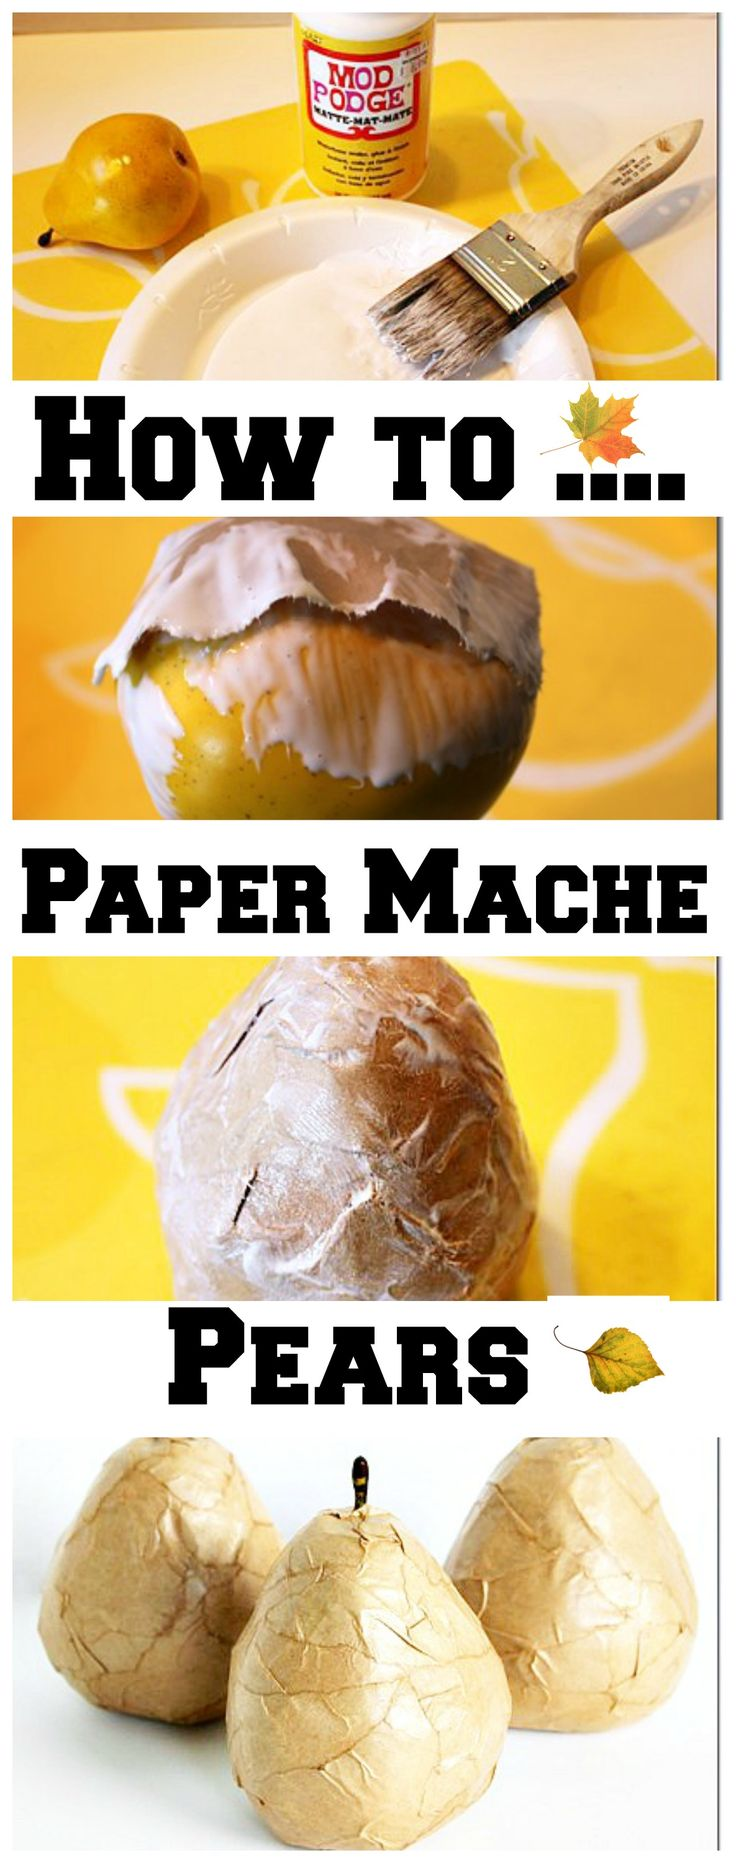 How to paper mache pears